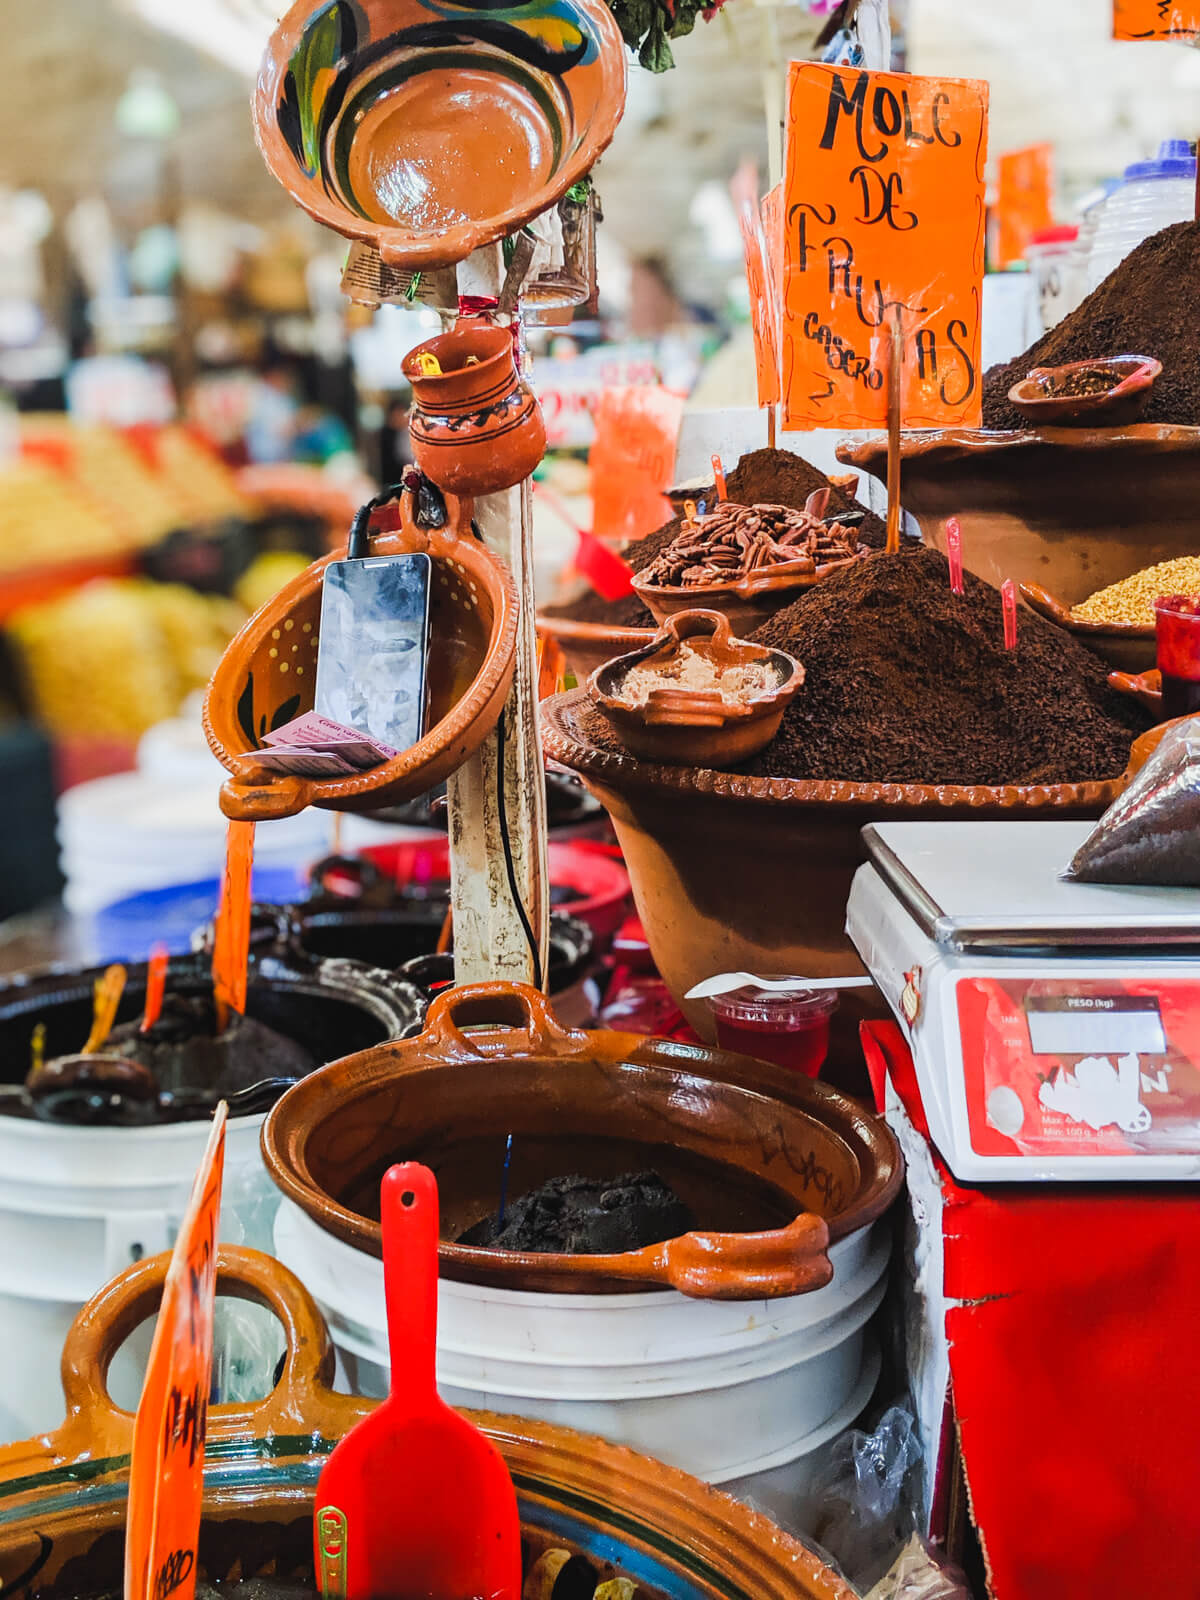 Large jars of mole and spices sit in a Mexico City market